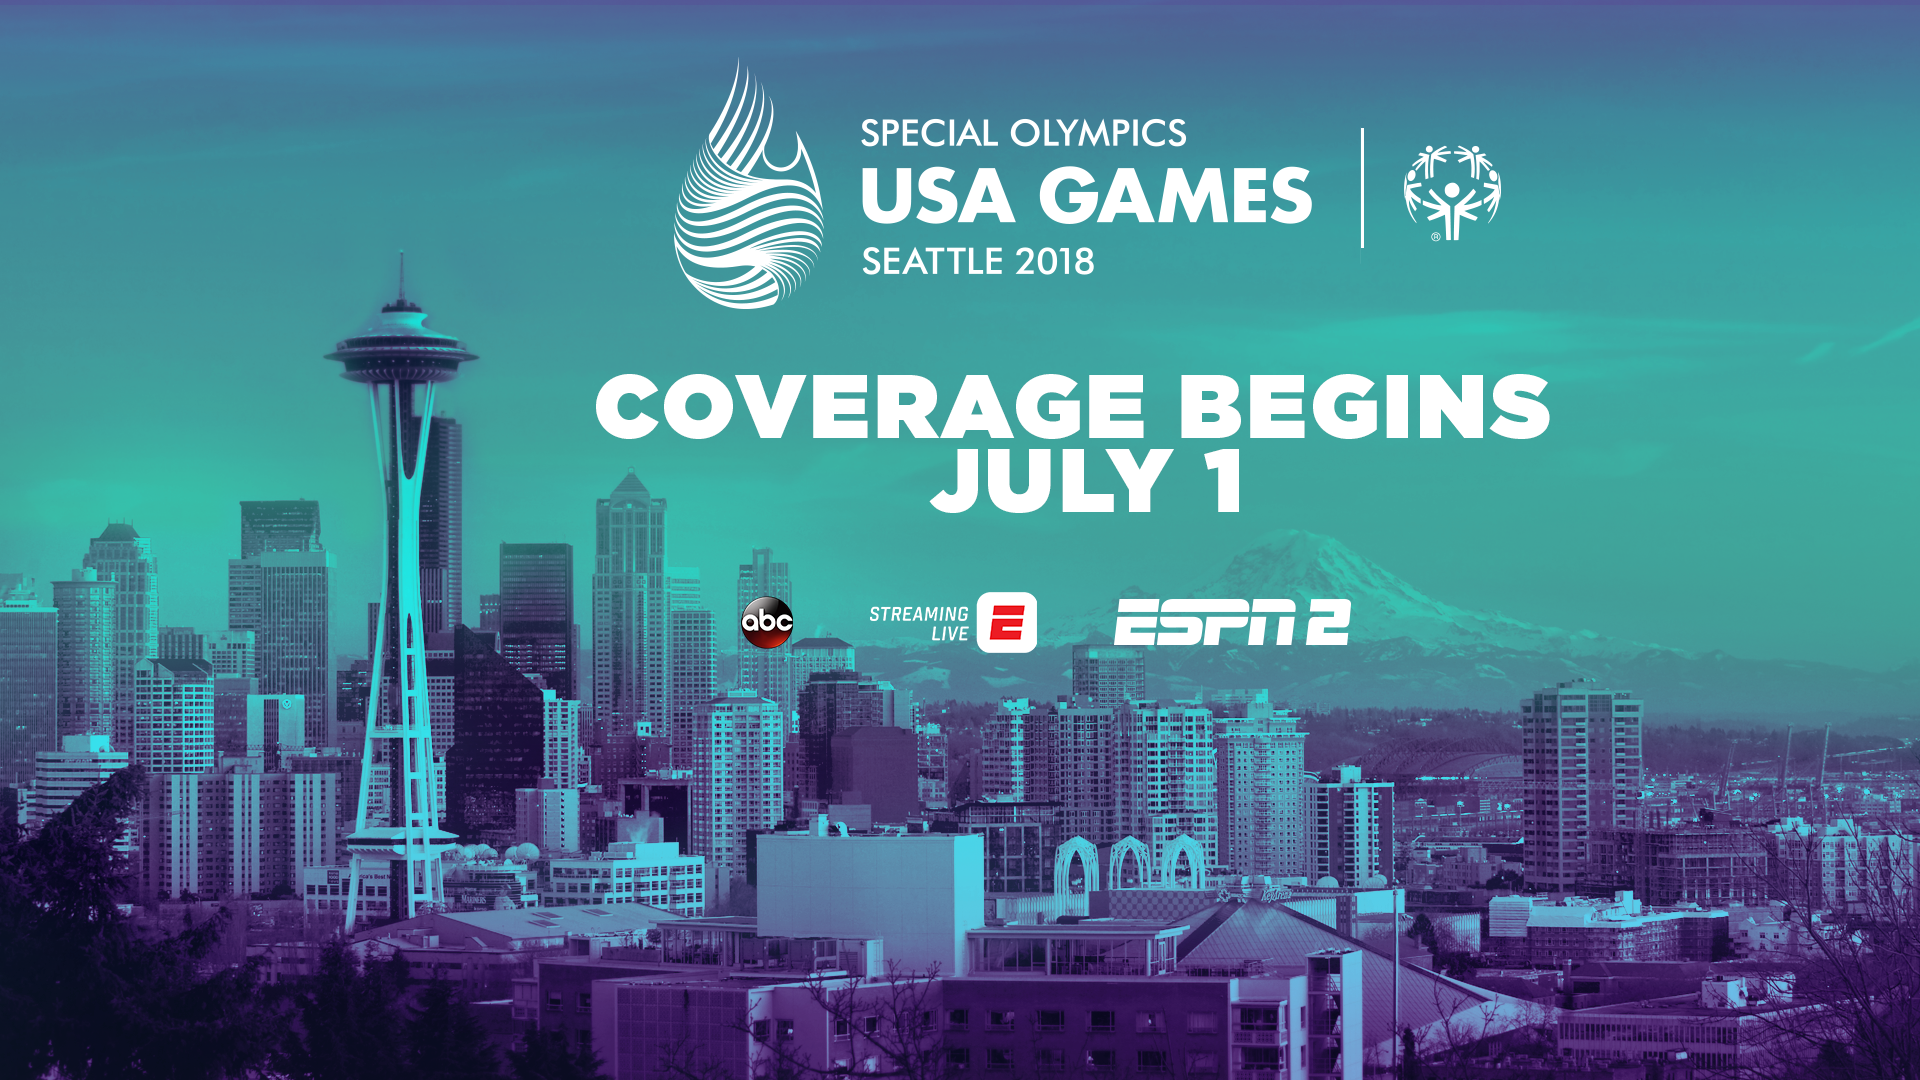 USA Games ESPN Coverage - Special Olympics Maryland